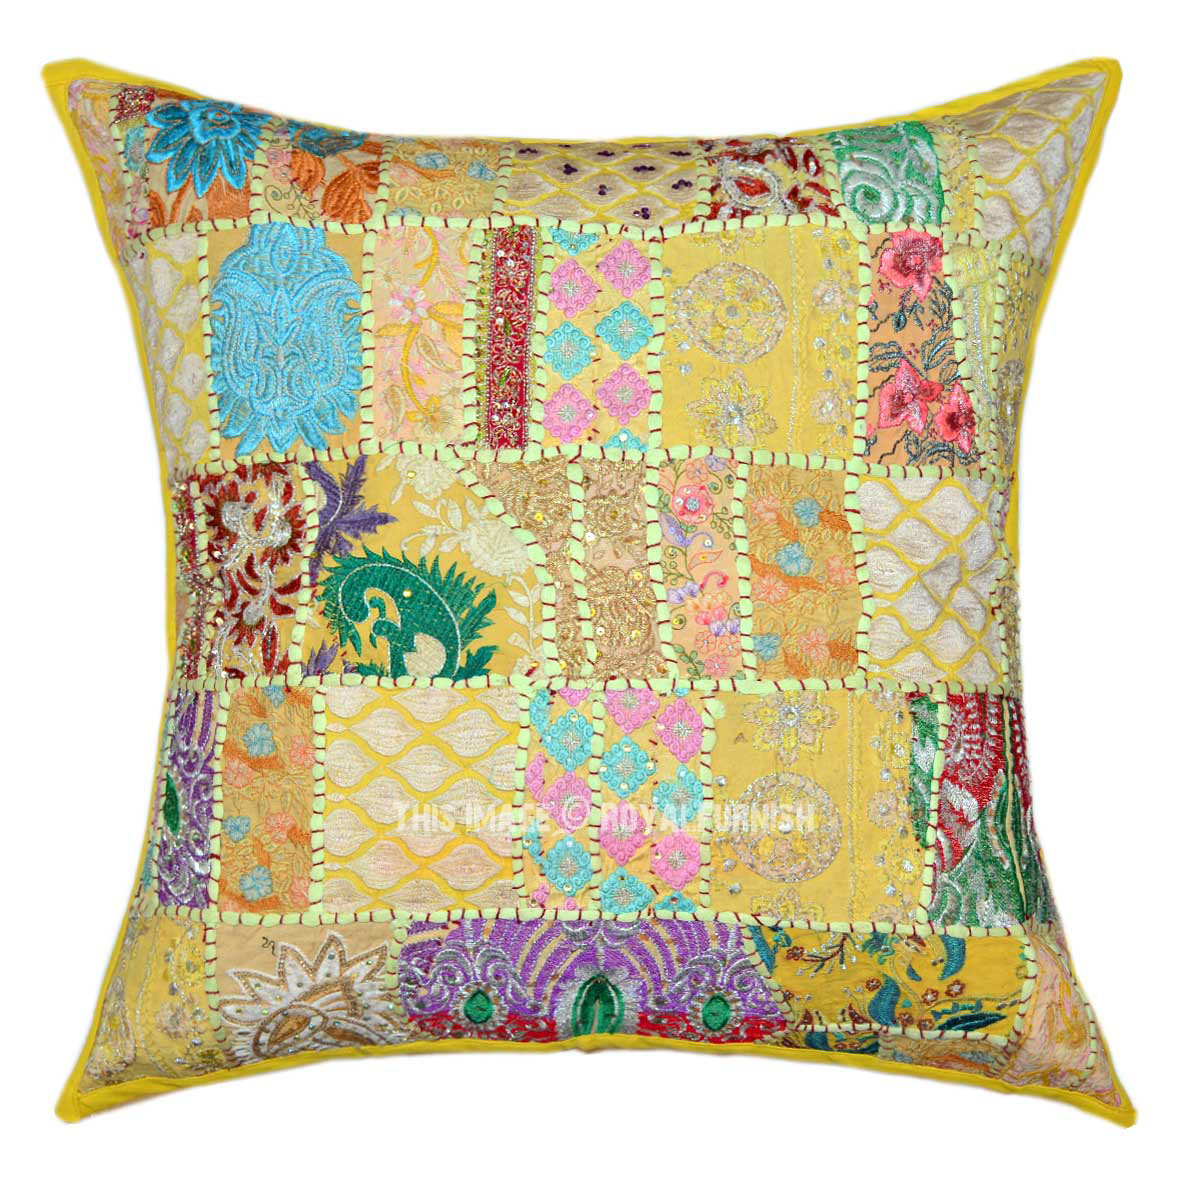 Big Yellow Decorative Pillows : 24X24